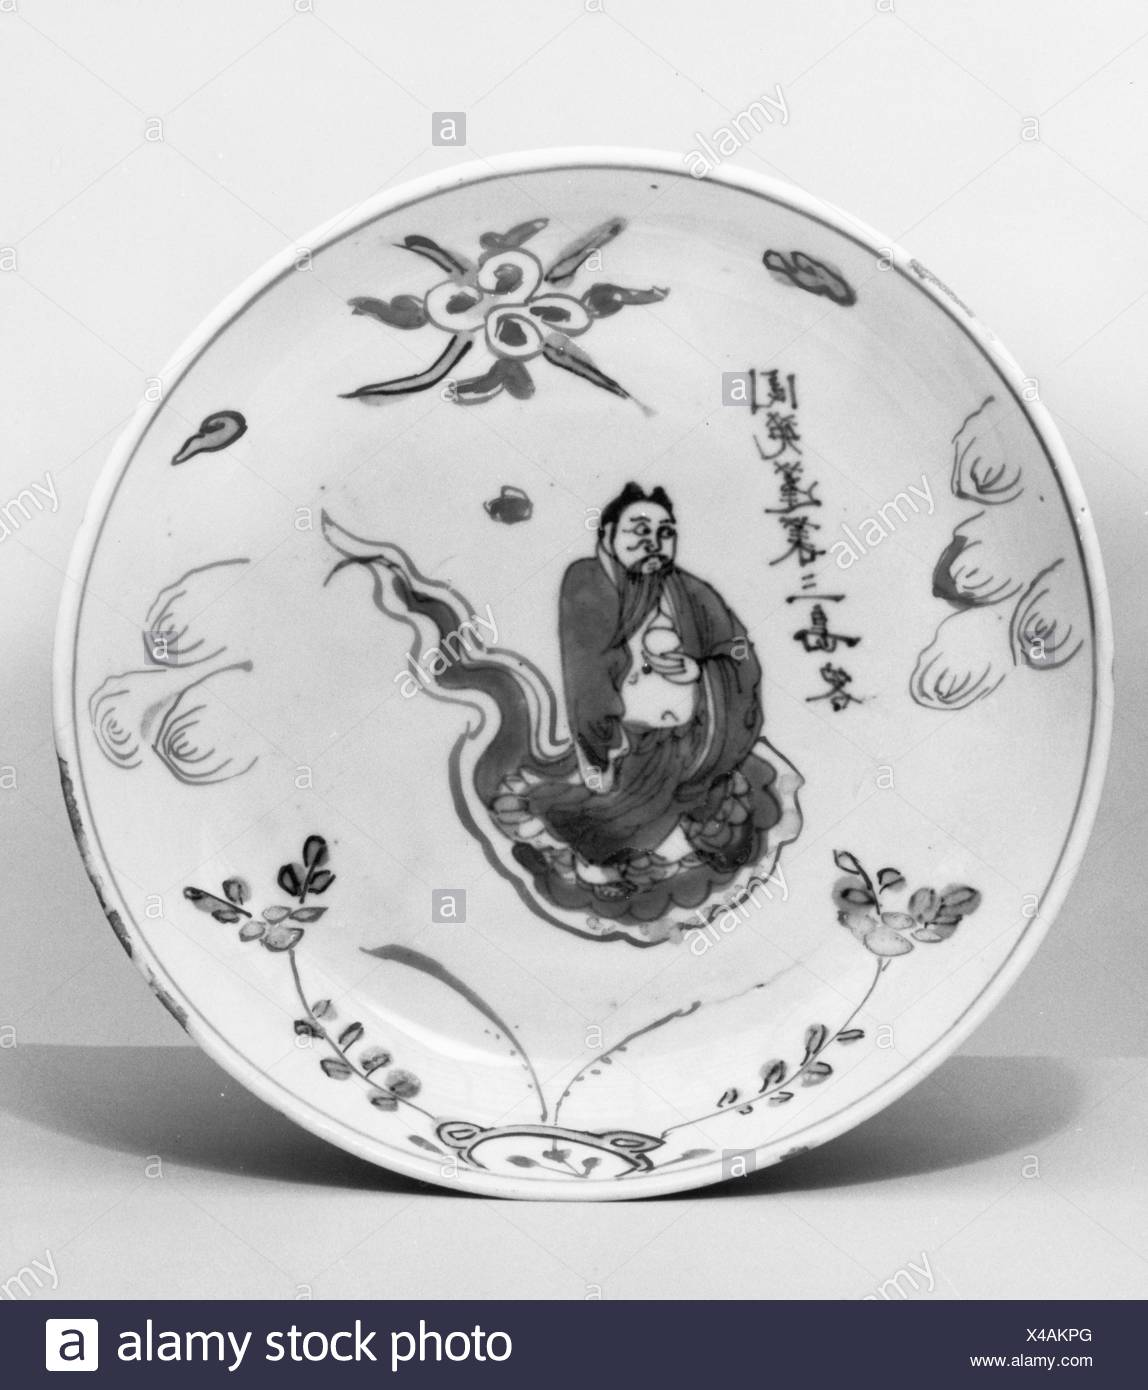 Period: Ming dynasty (1368-1644), Tianqi mark and period (1621-1627);  Culture: China; Medium: Porcelain painted in underglaze blue and